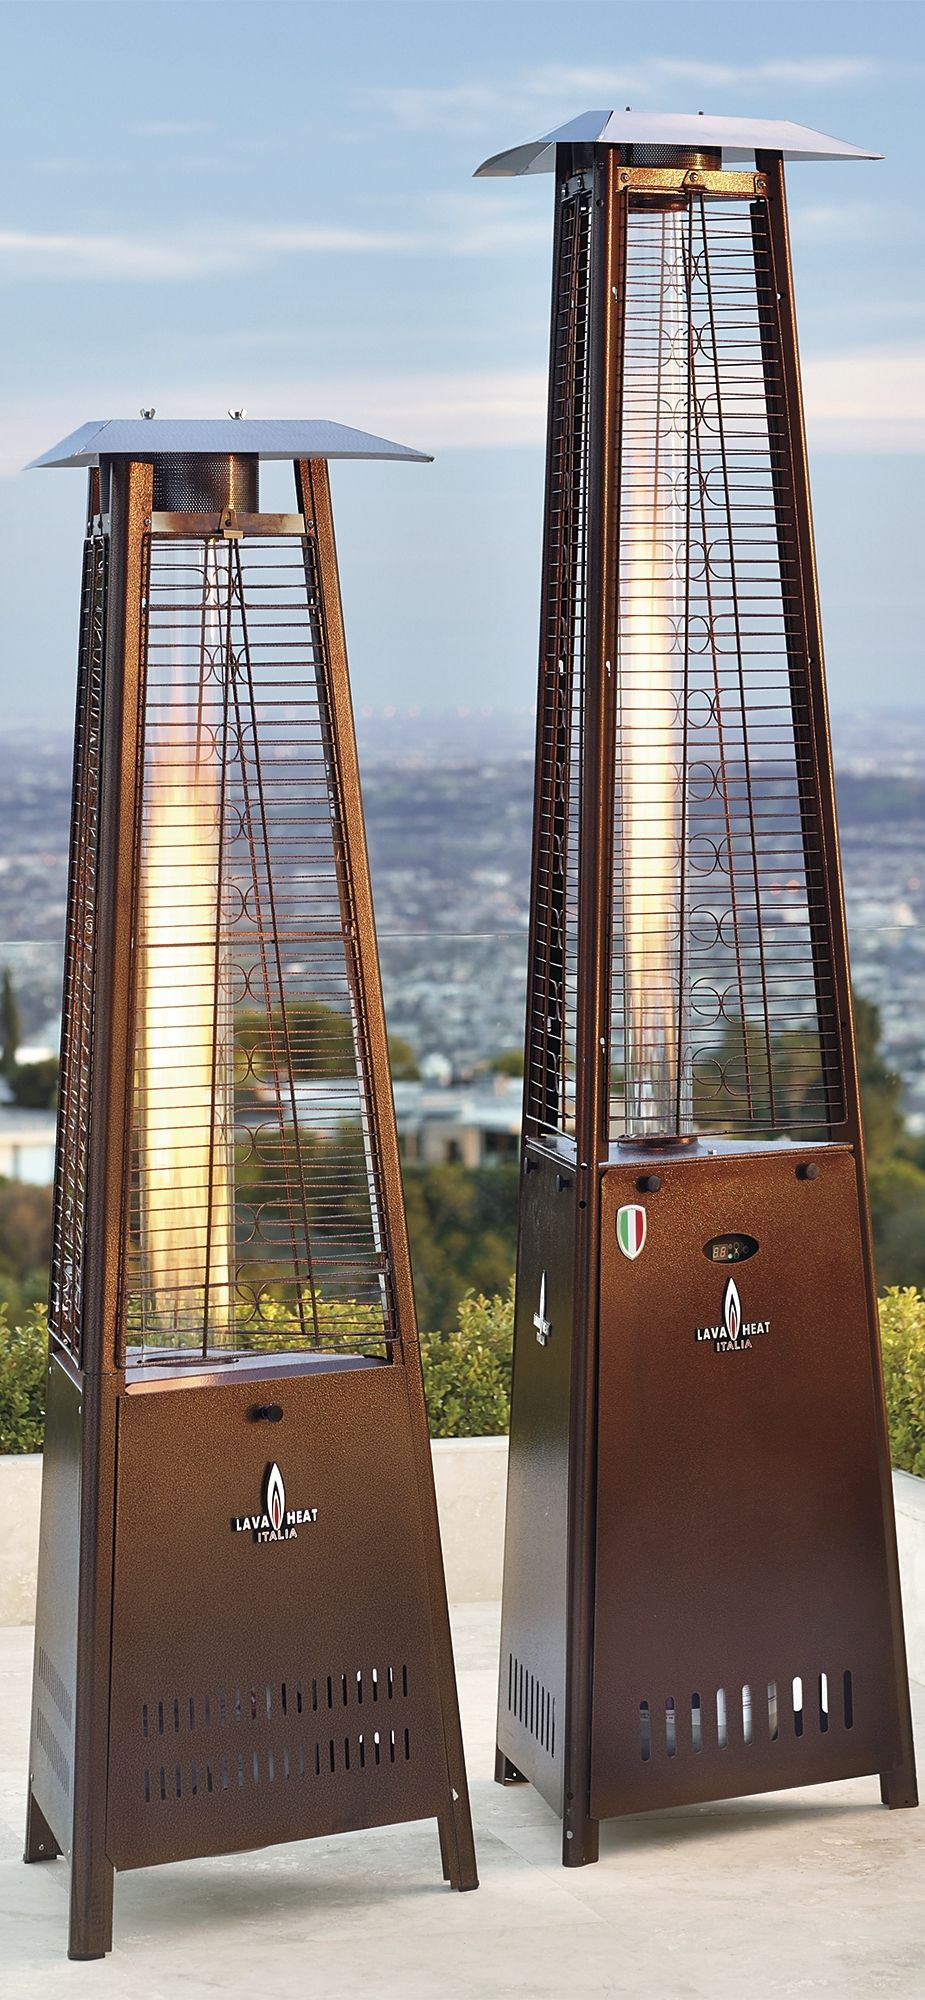 Instantly Add Toasty Comfort And Stylish Ambiance To Your Outdoor Setting  With Our Capri Patio Heater.